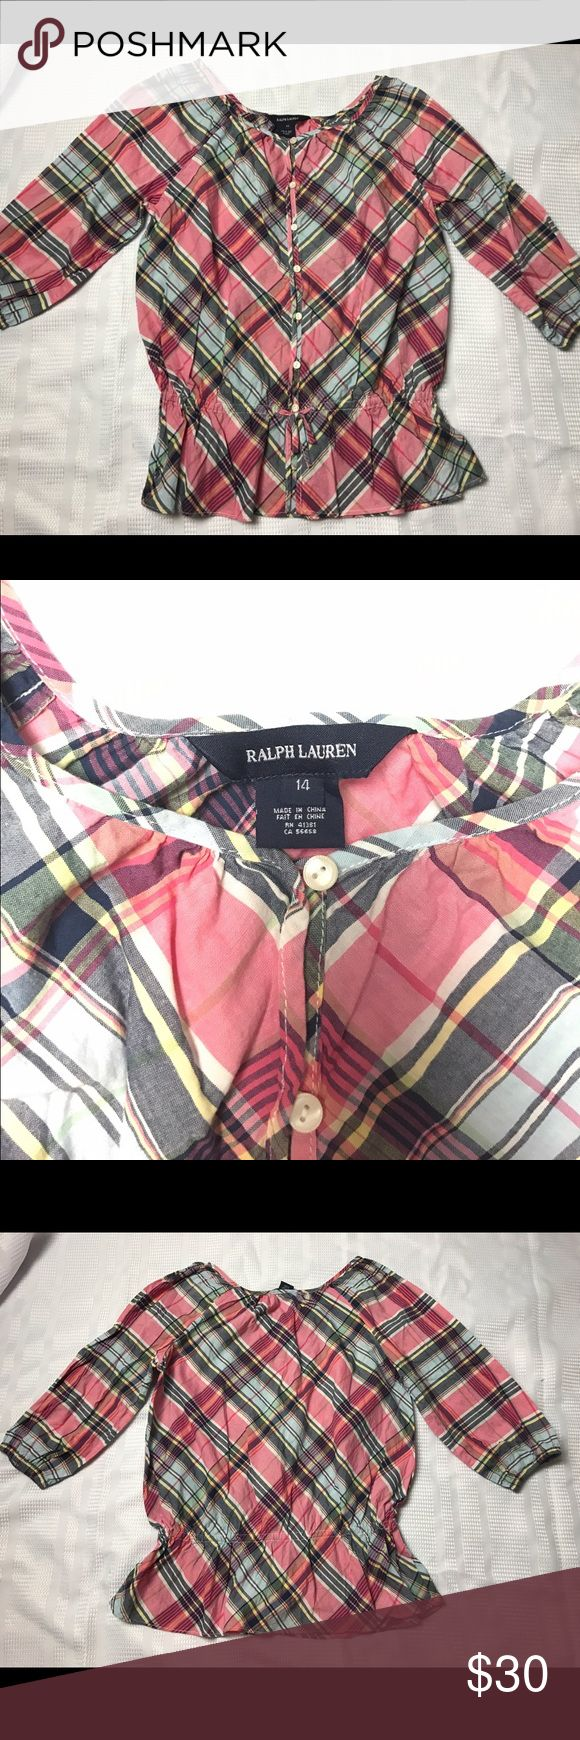 RALPH LAURAN Blouse Gently used RALPH LAURAN Tops Blouses